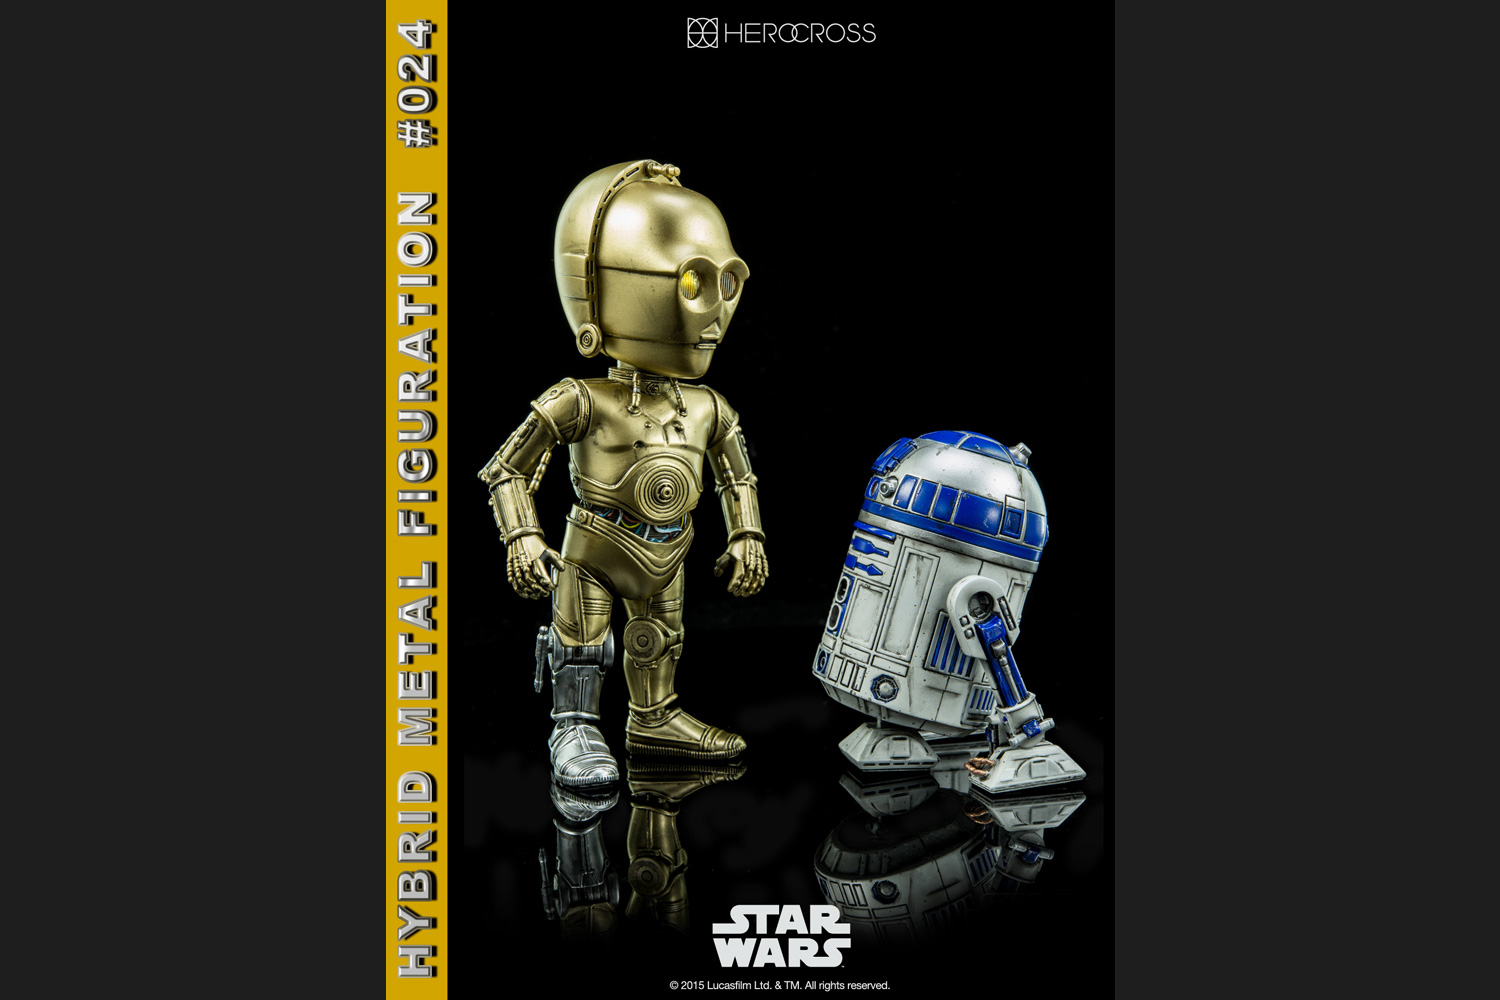 HeroCross #024 Star Wars C-3PO /& R2-D2 Set of 2